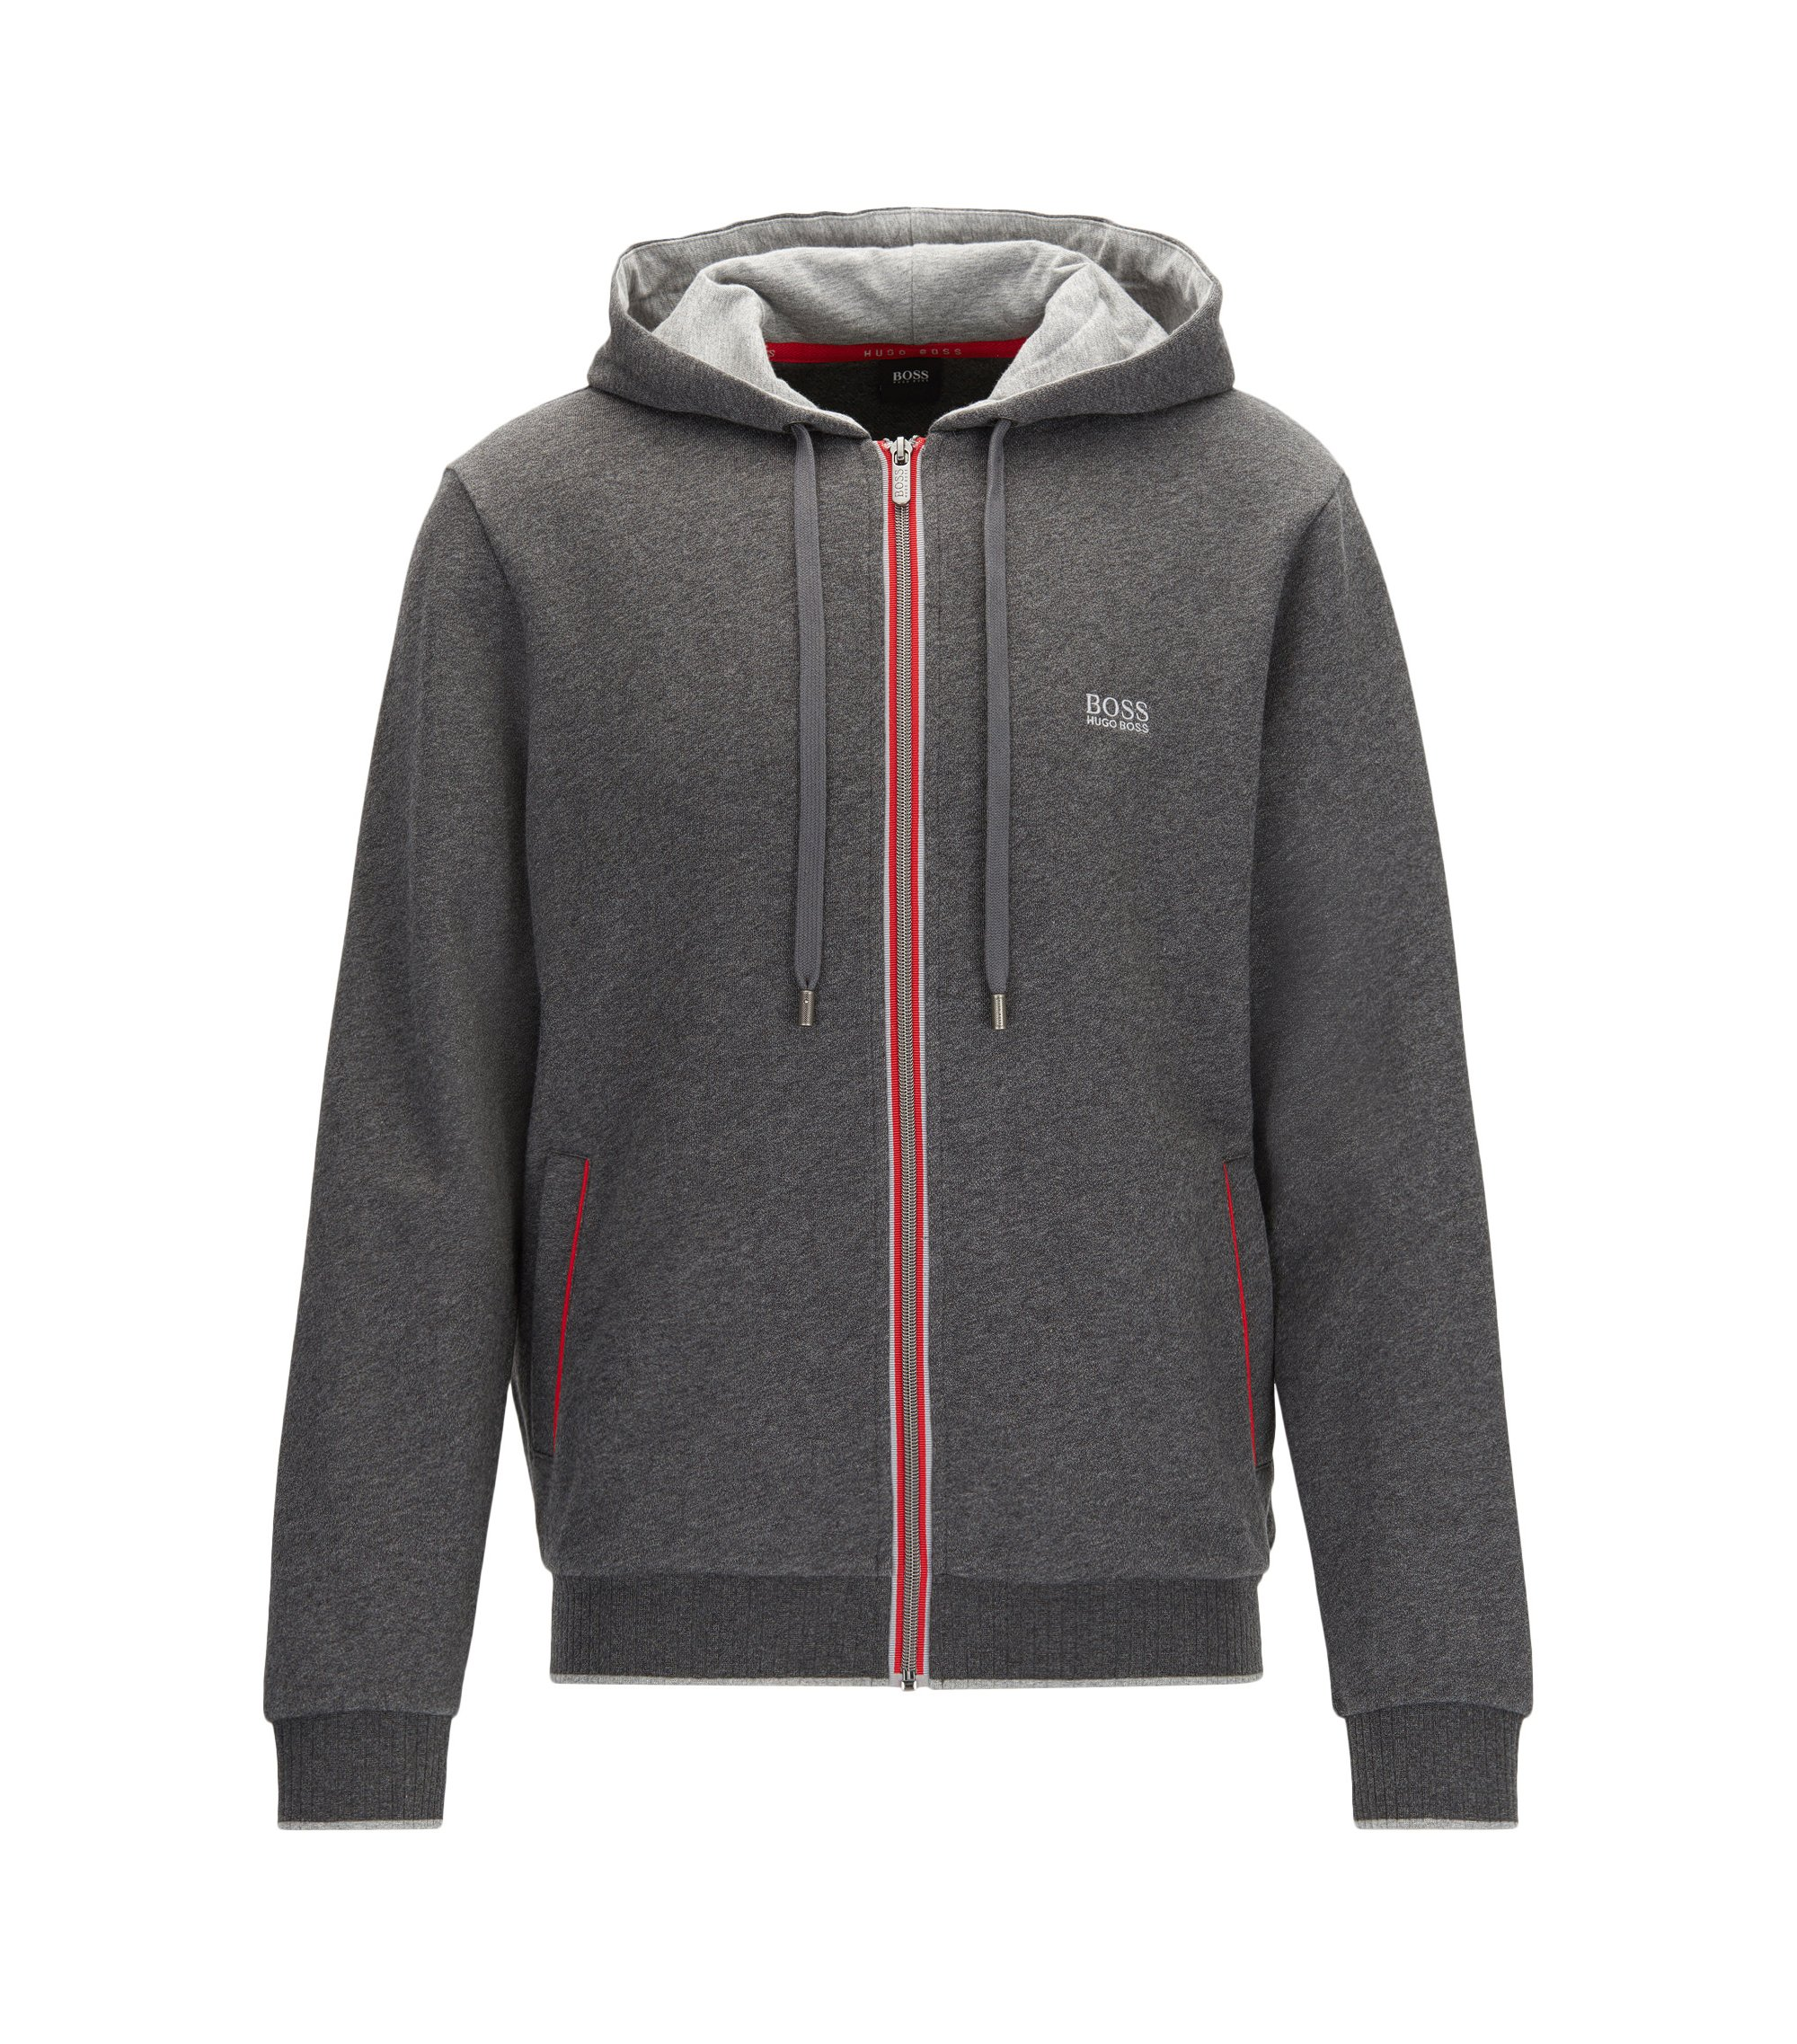 Piped Cotton Blend Jersey Hoodie   Authentic Jacket H, Grey